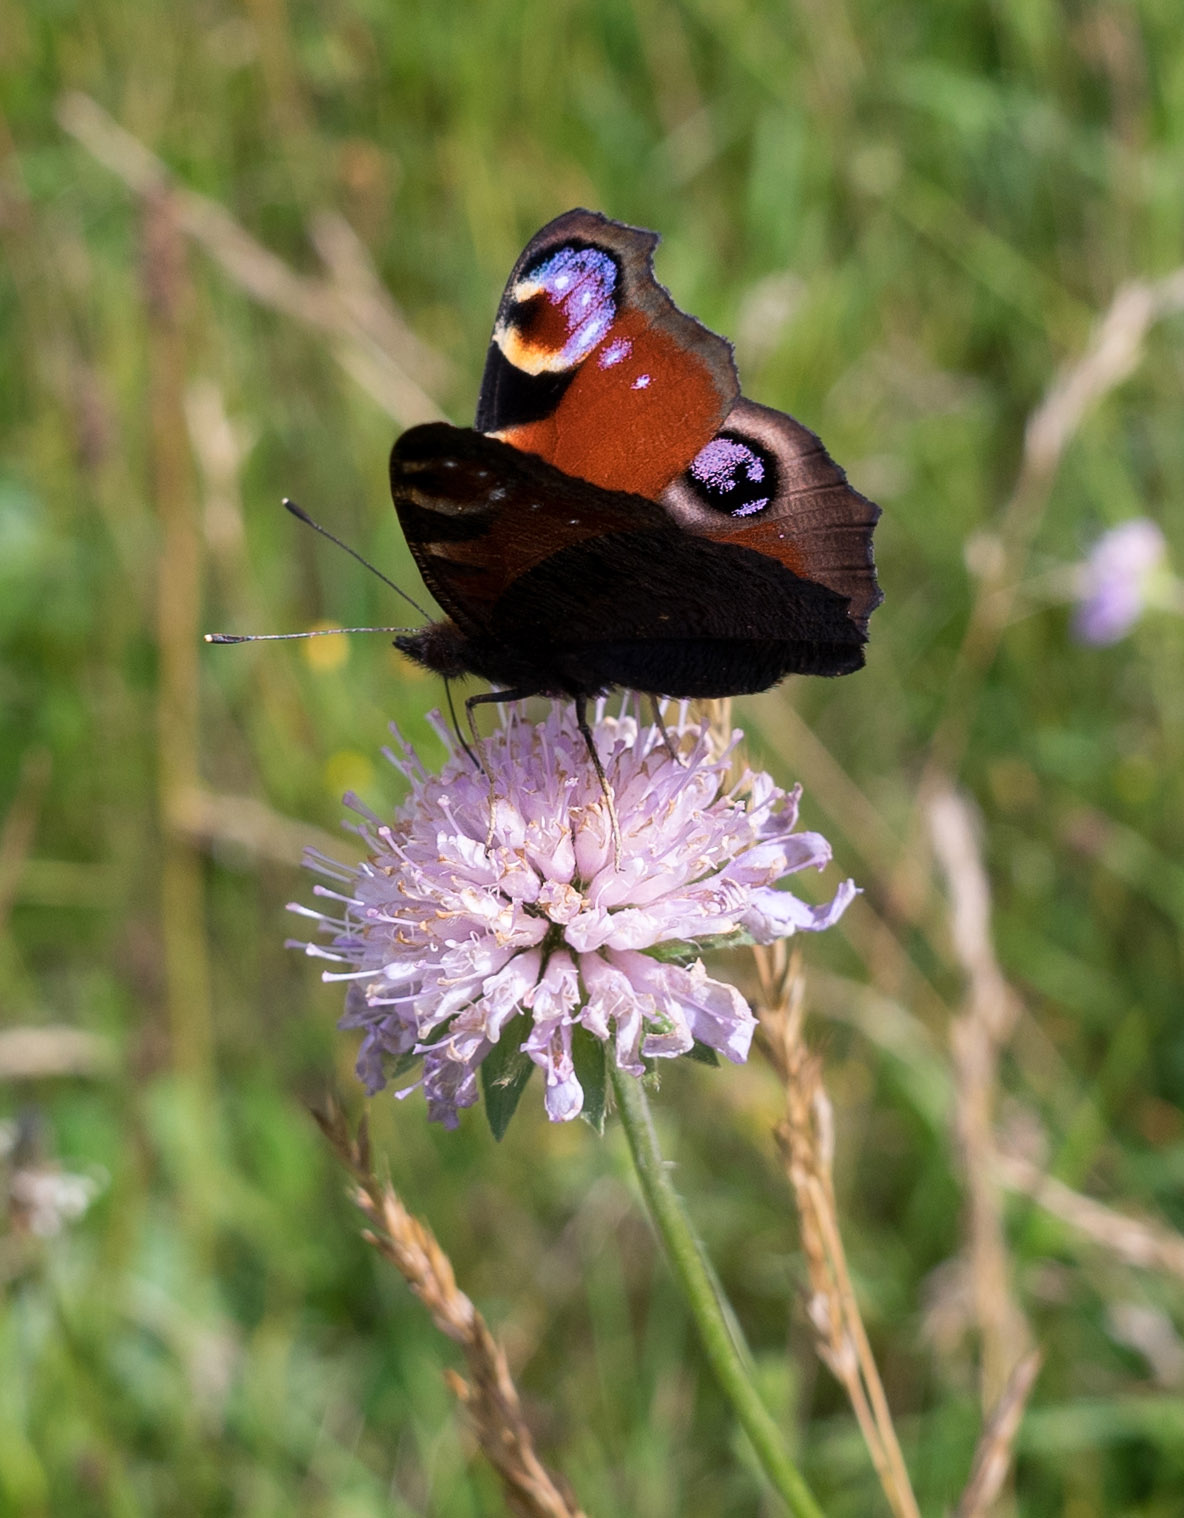 Peacock Butterfly on Scabious in Coddenham Churchyard